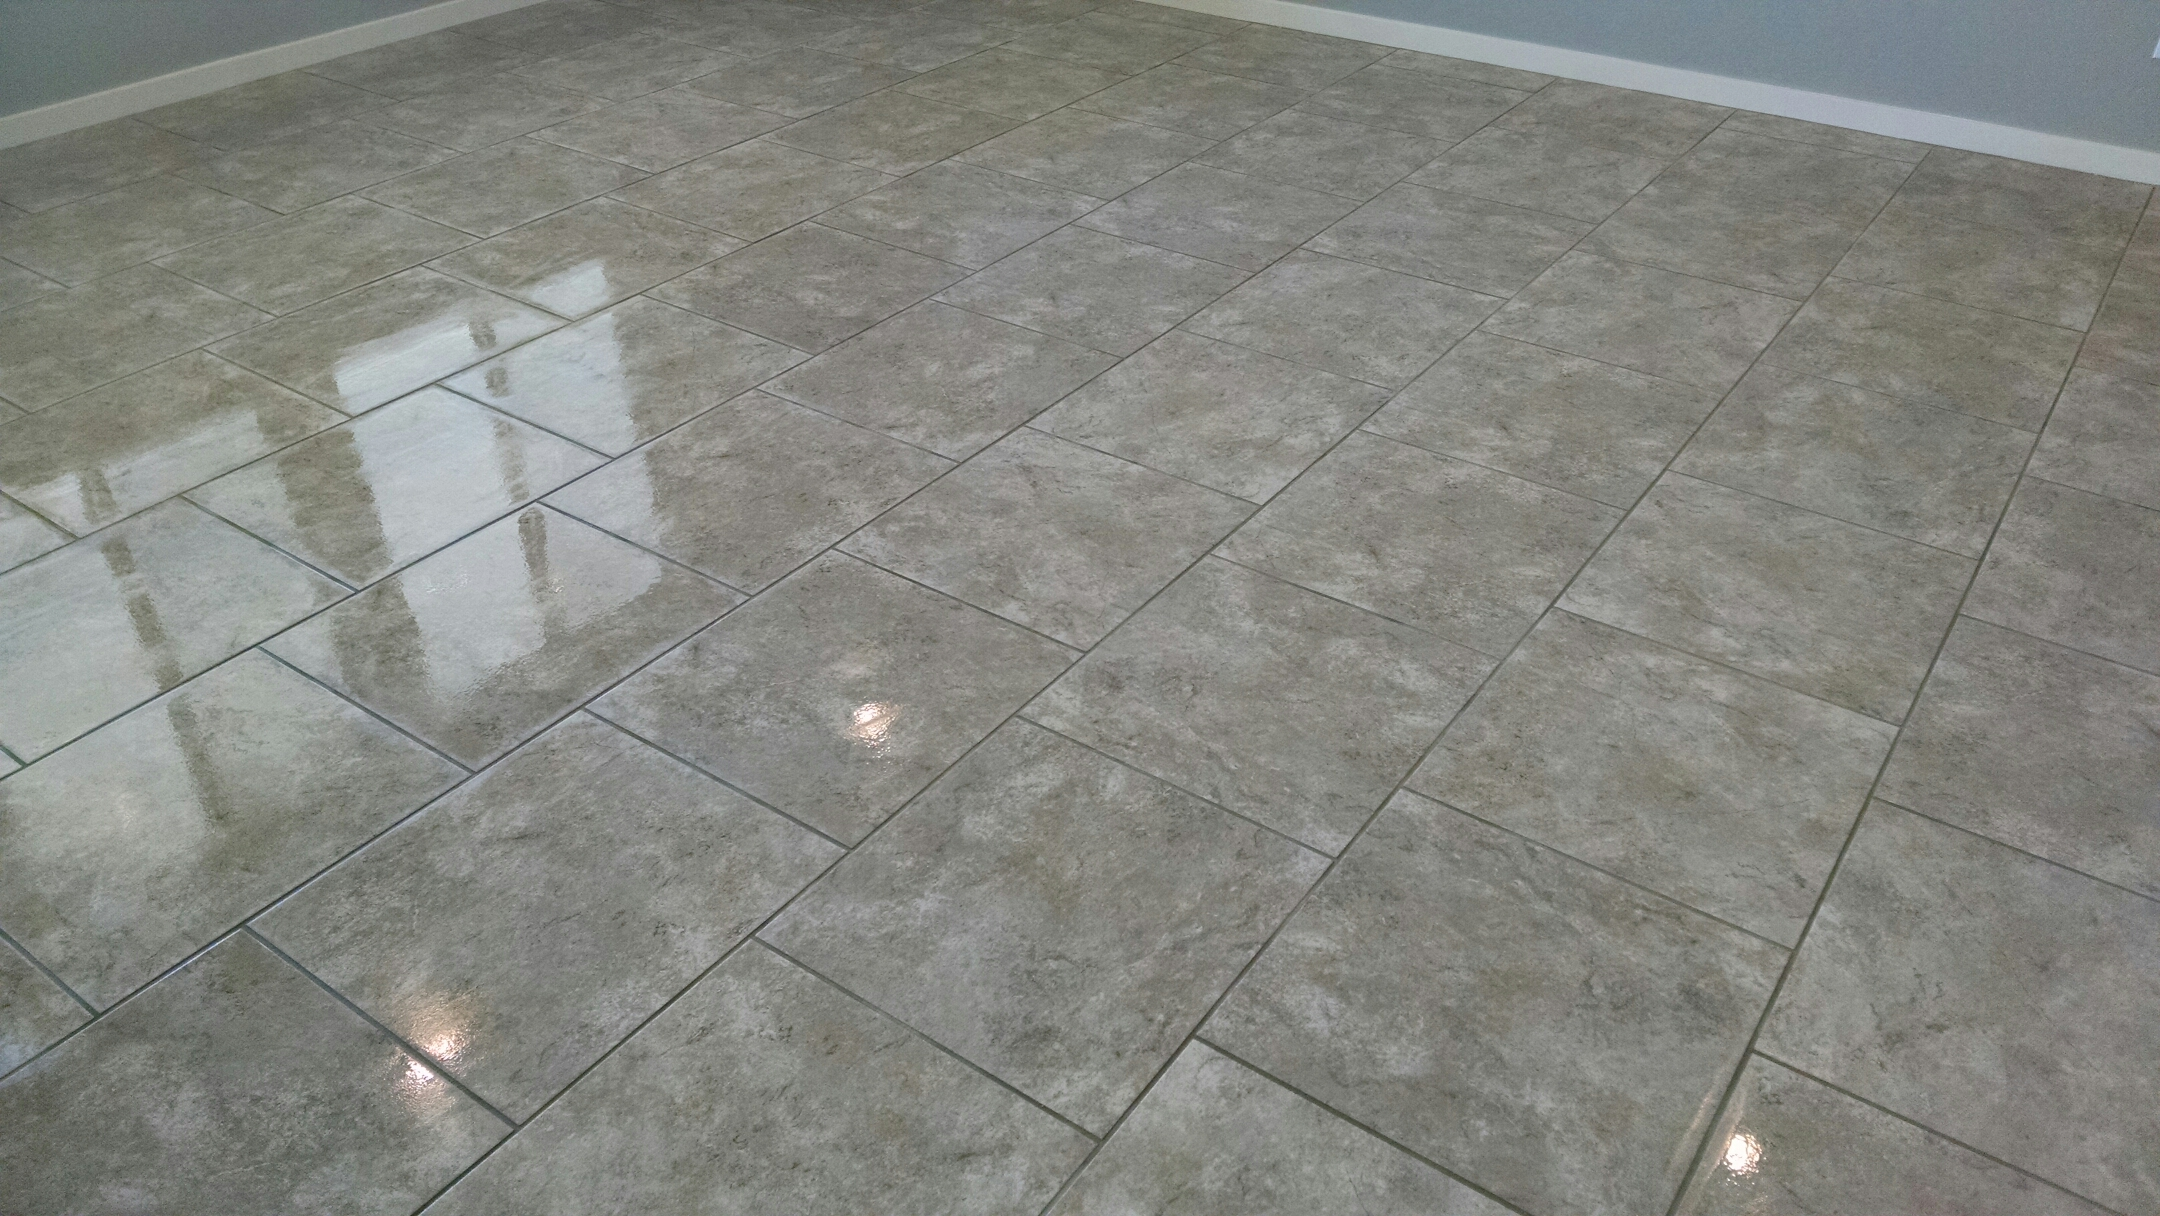 Mesa, AZ - Completed cleaning tile and grout for a new PANDA family in Lehi Crossing, Mesa, AZ 85213.